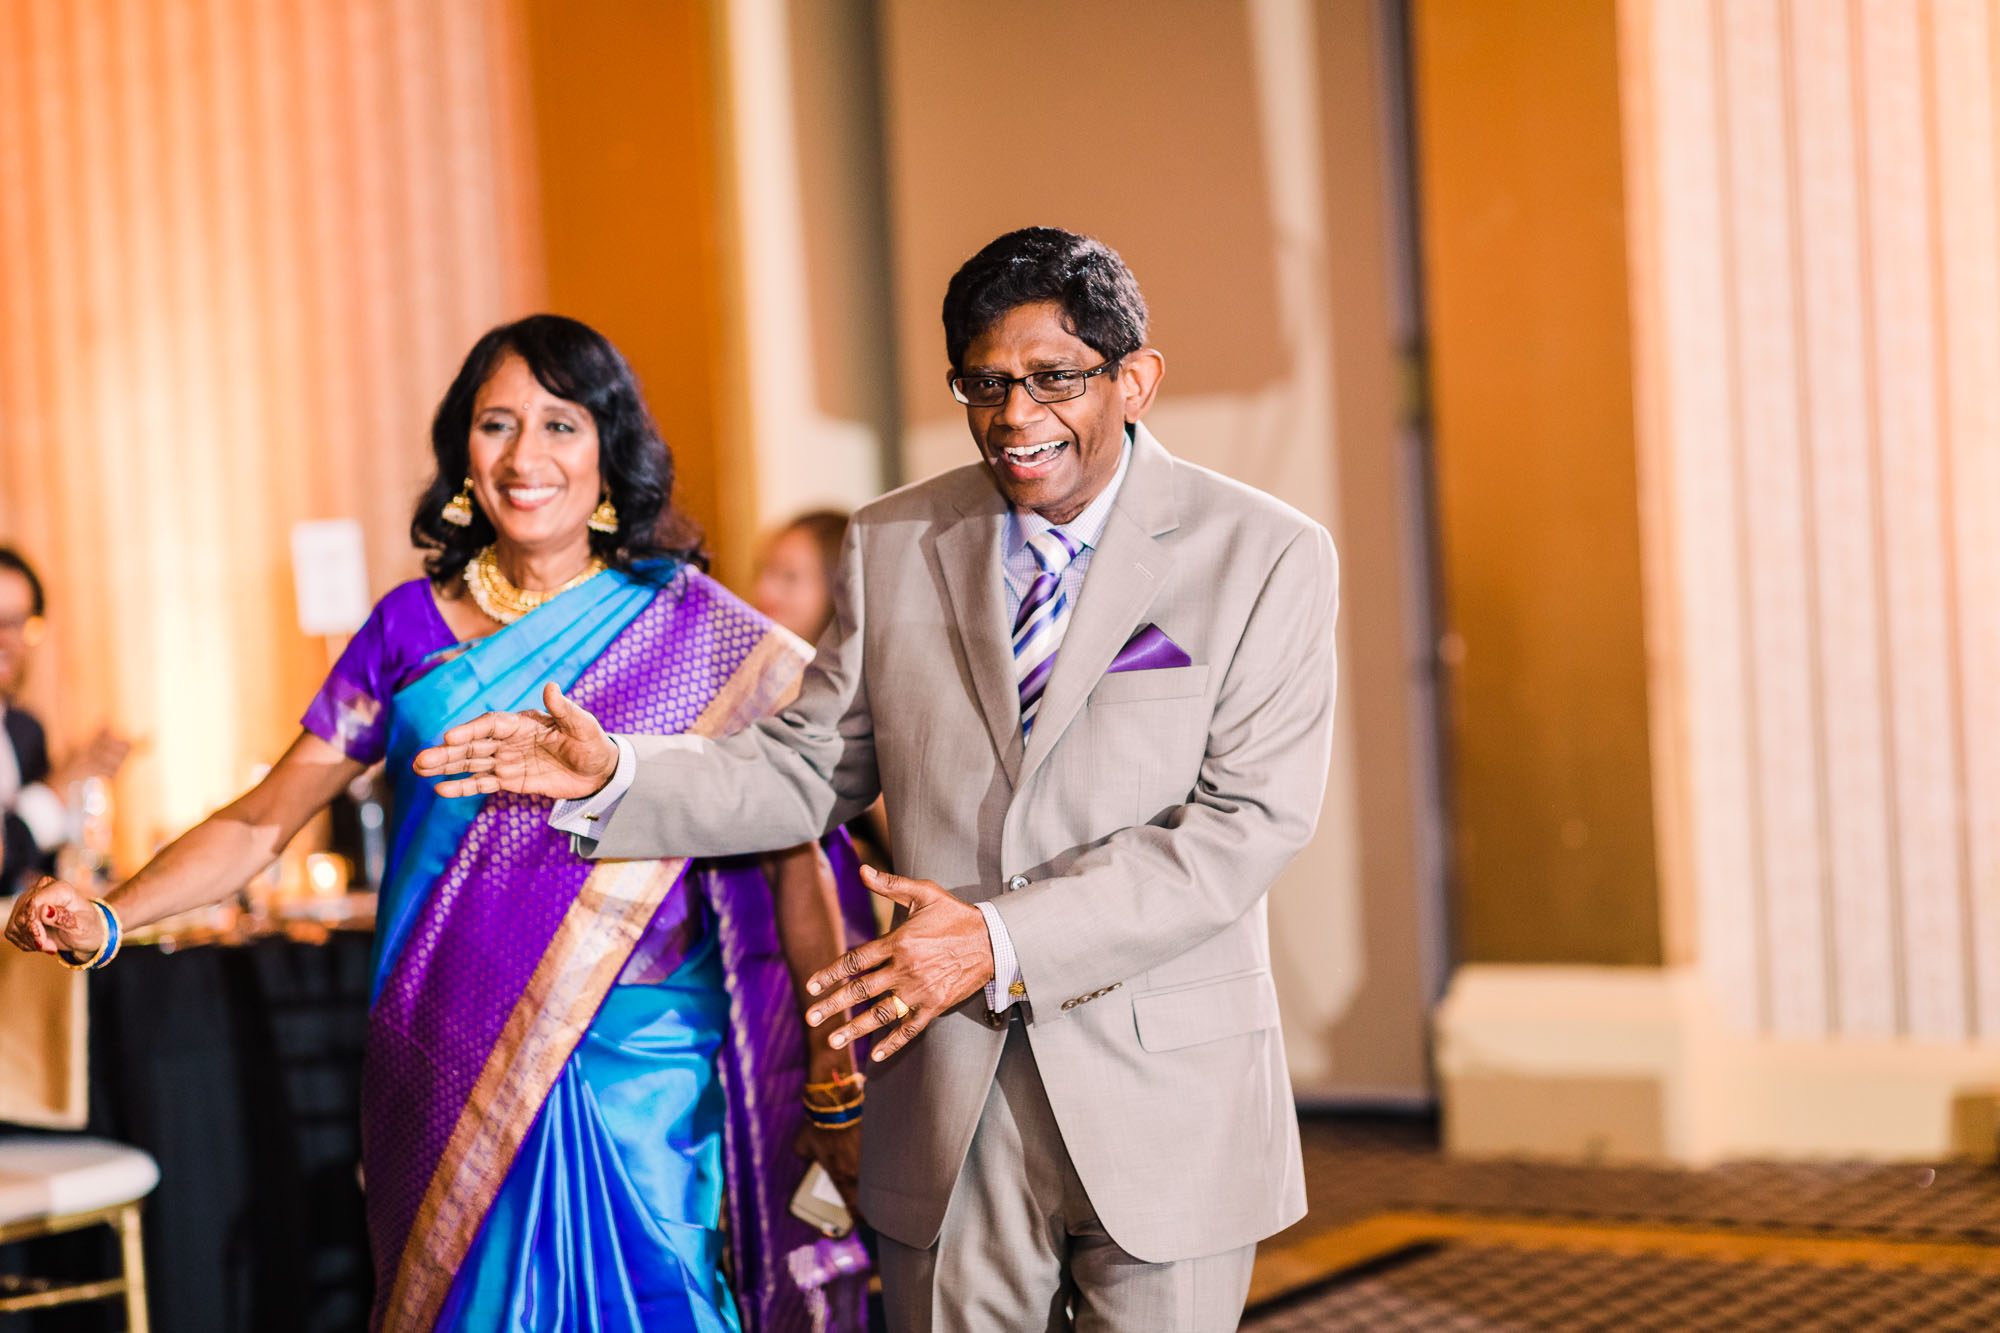 Scranton_Radisson_Hindu_Wedding-6915.jpg